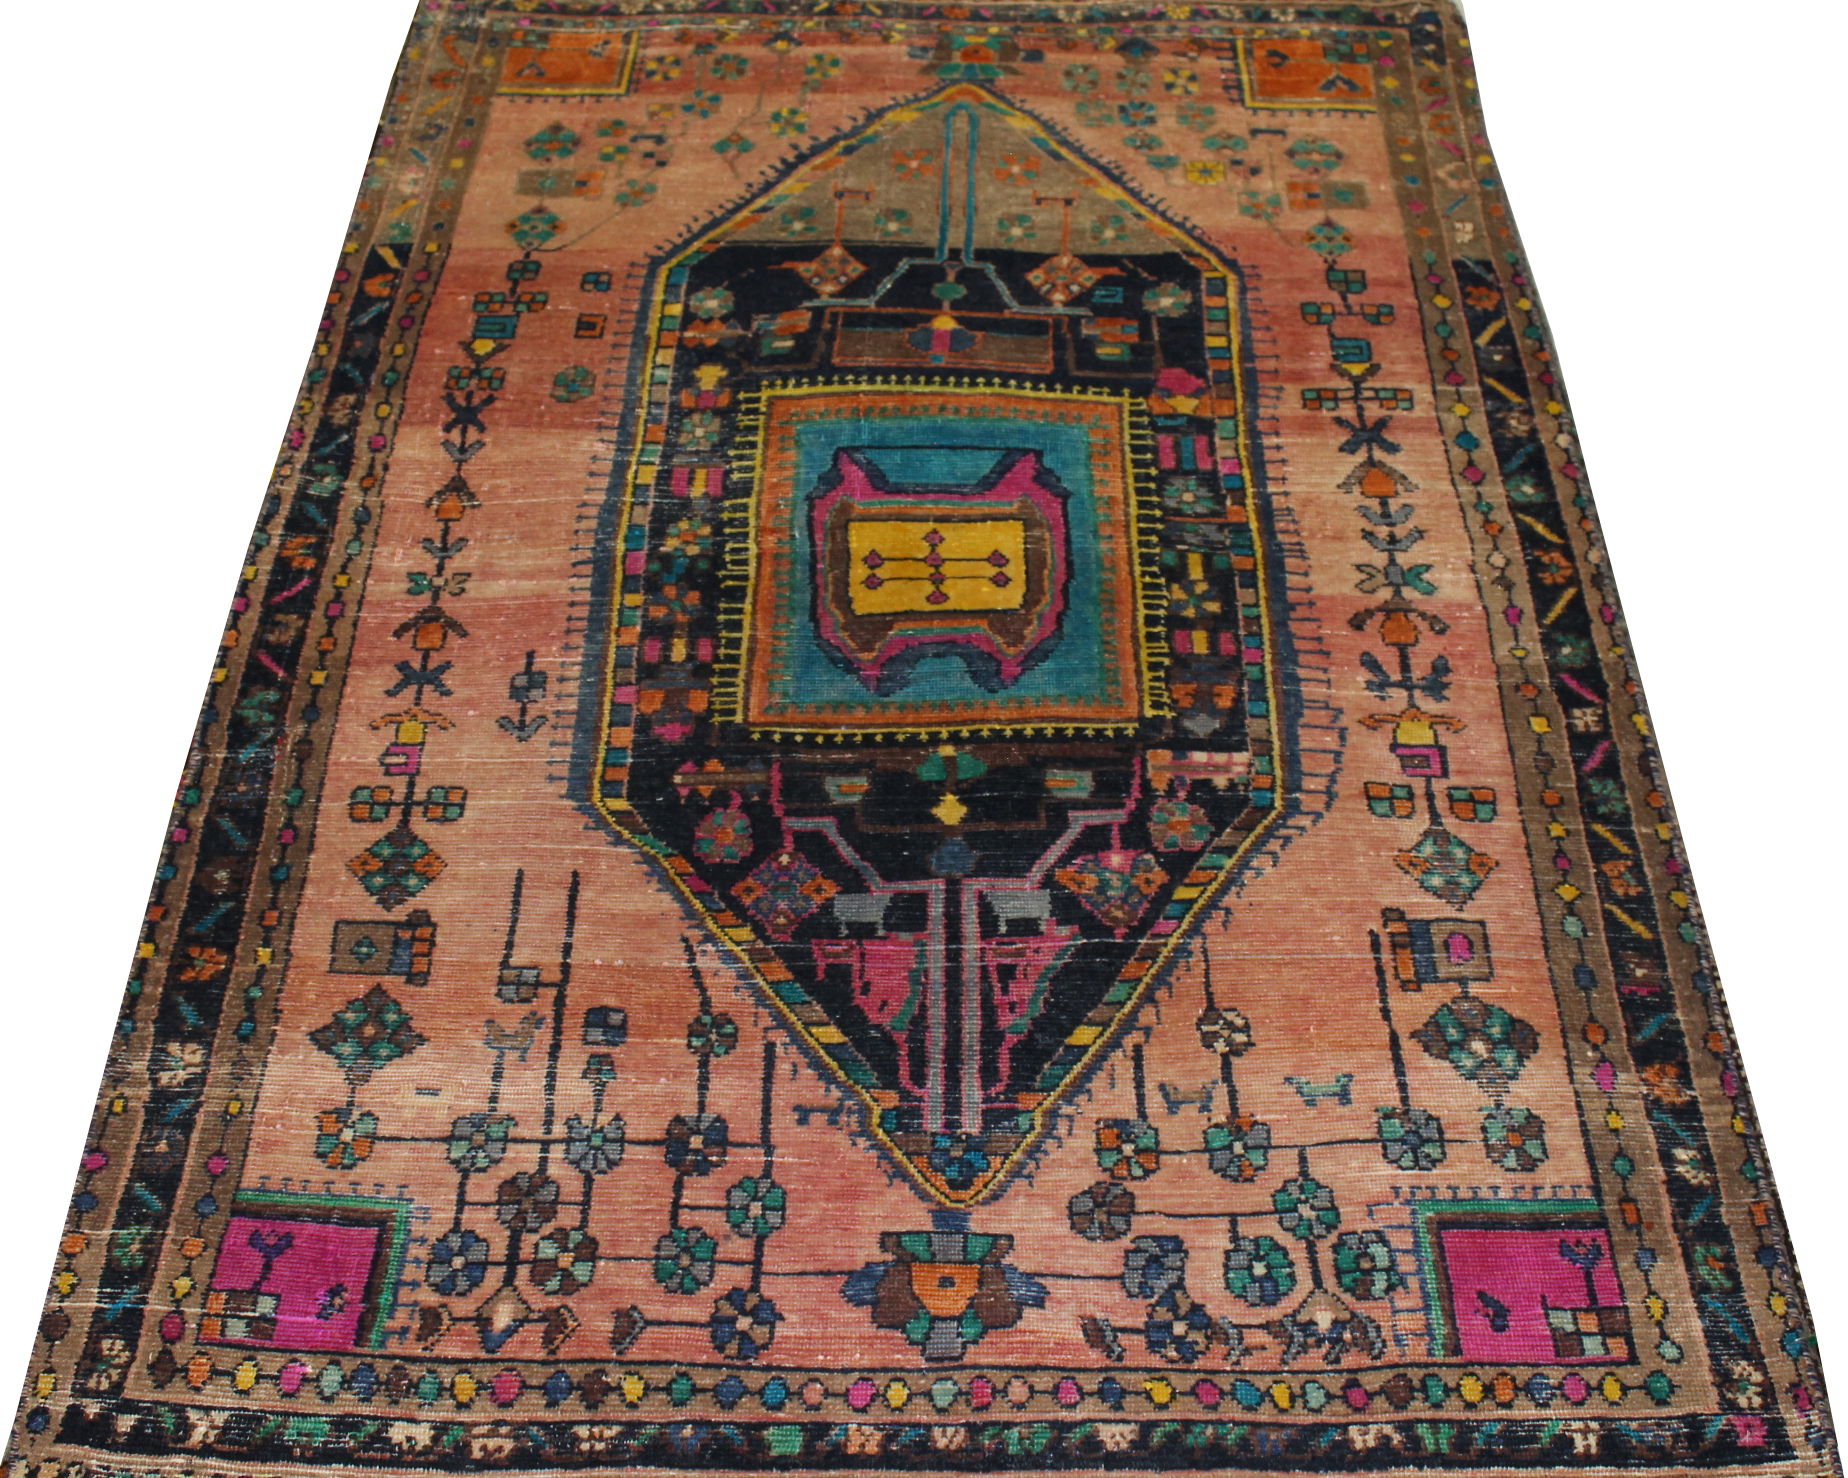 5x7/8 Vintage Hand Knotted Wool Area Rug - MR023736